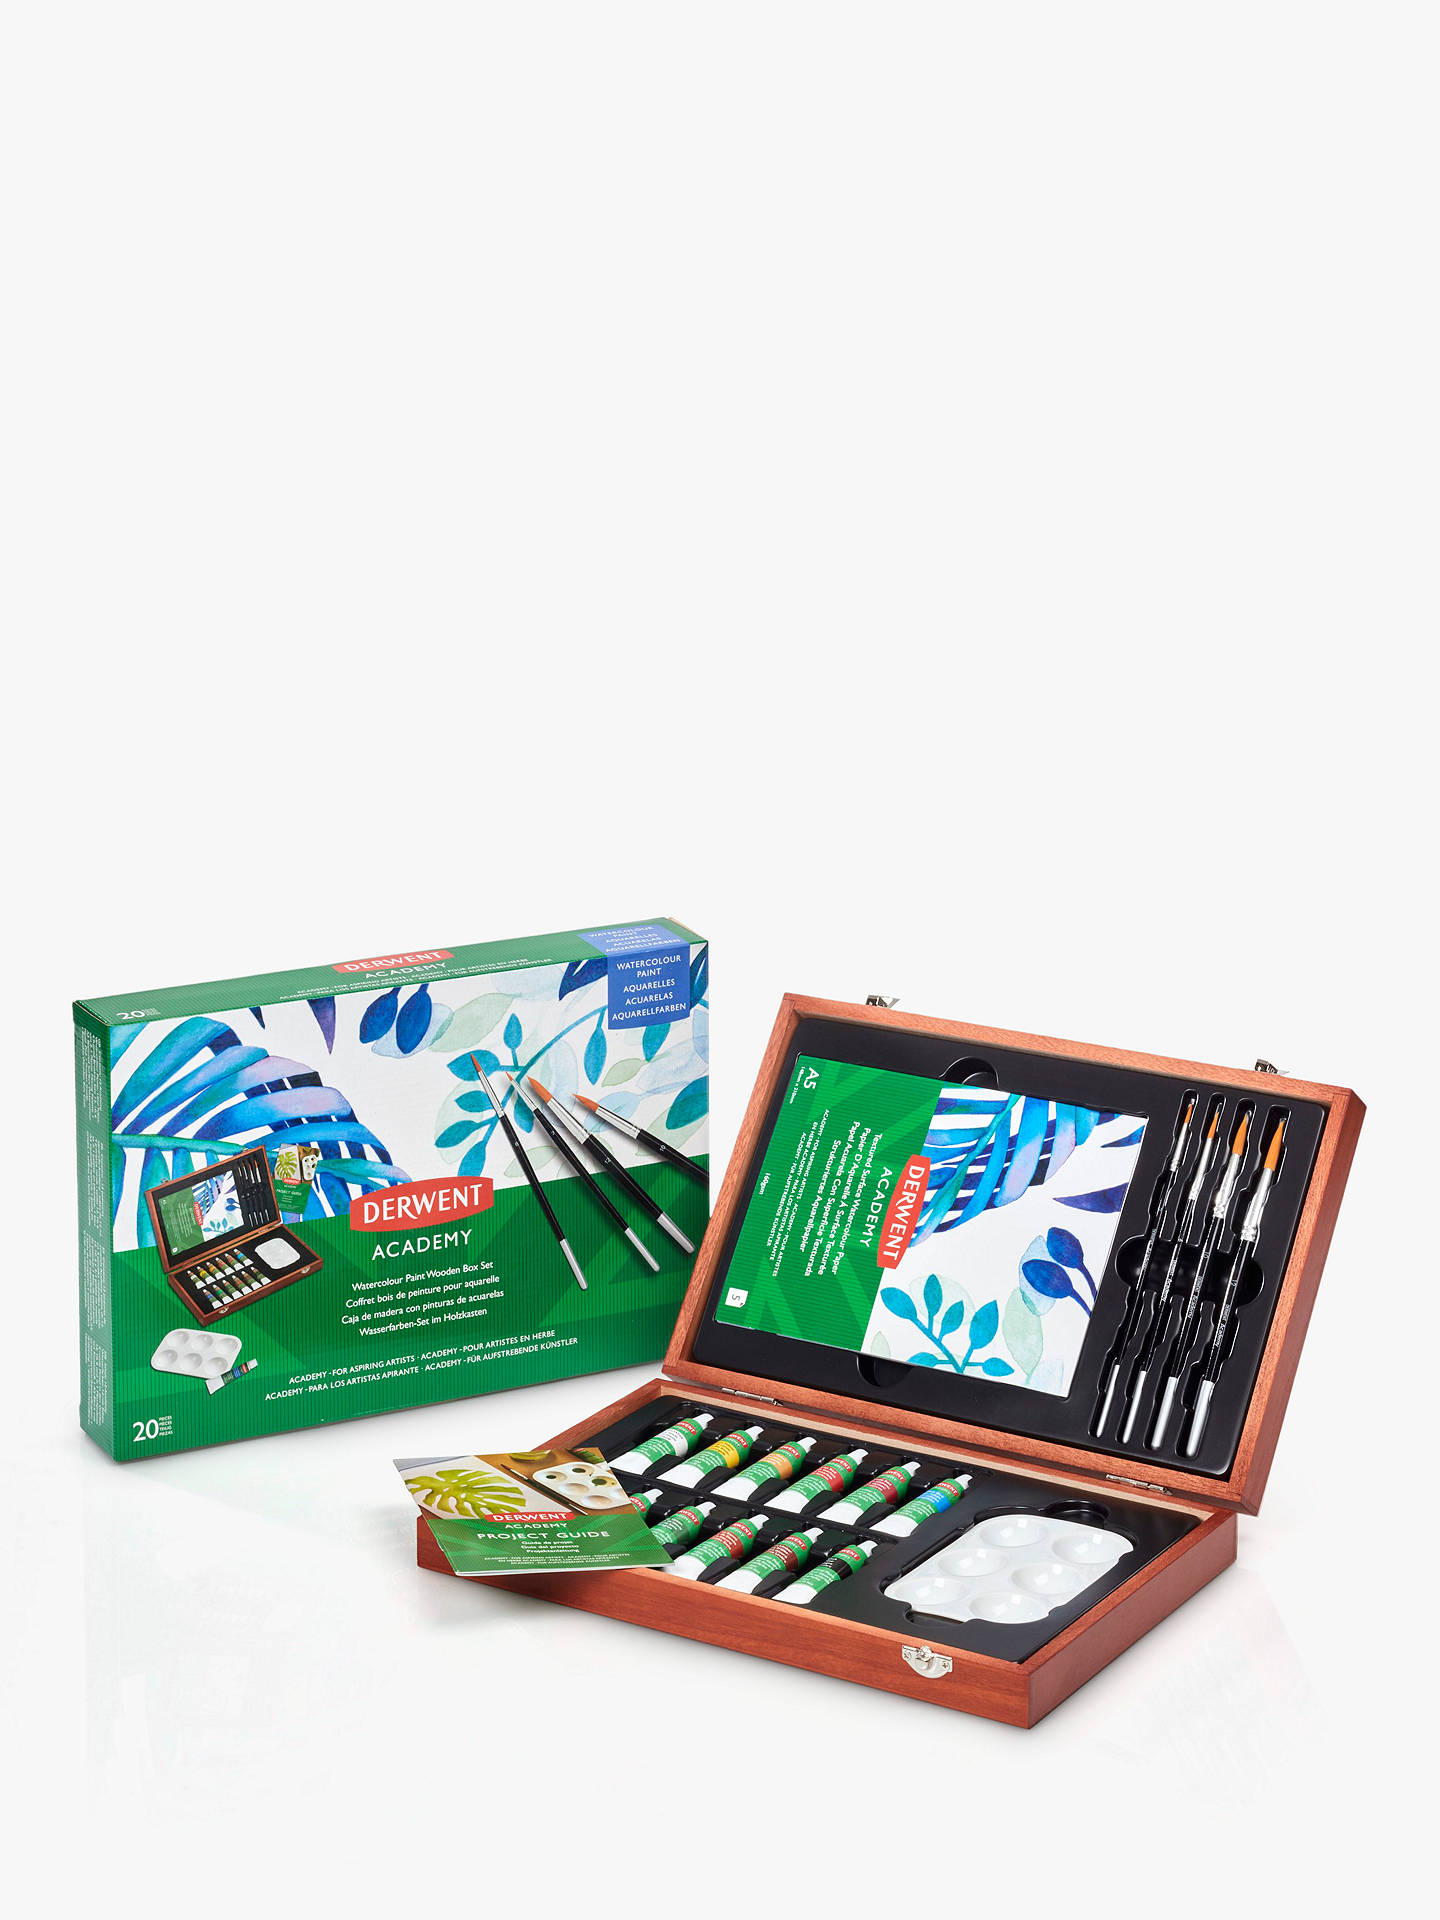 Buy Derwent Academy Watercolour Wooden Box Set Online at johnlewis.com